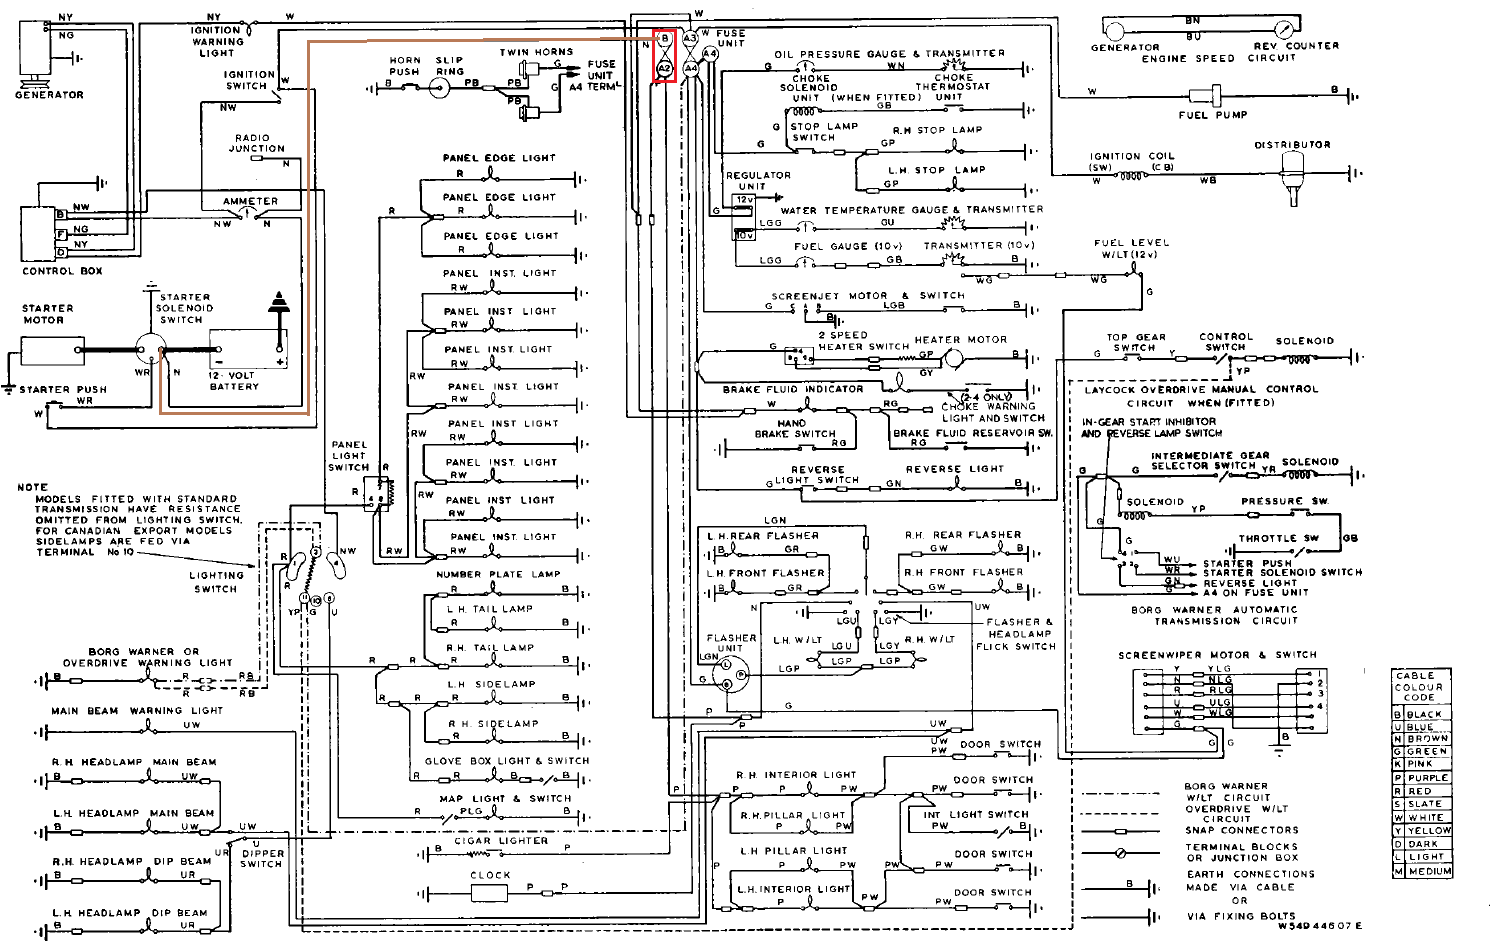 Jaguar 340 Wiring Diagram